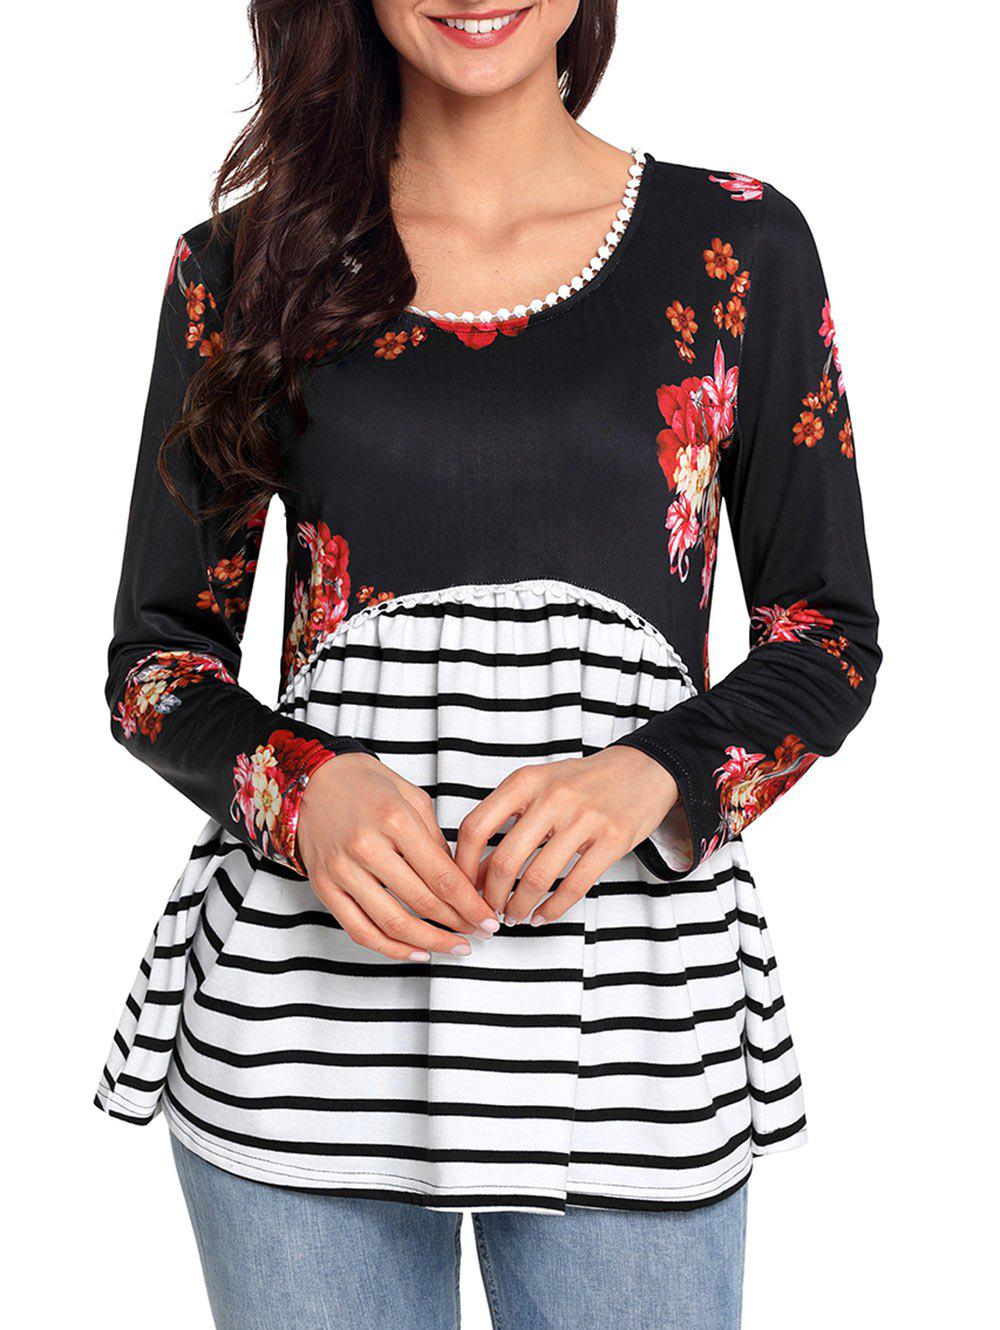 Trimmed Floral and Striped Tunic Top - BLACK 2XL